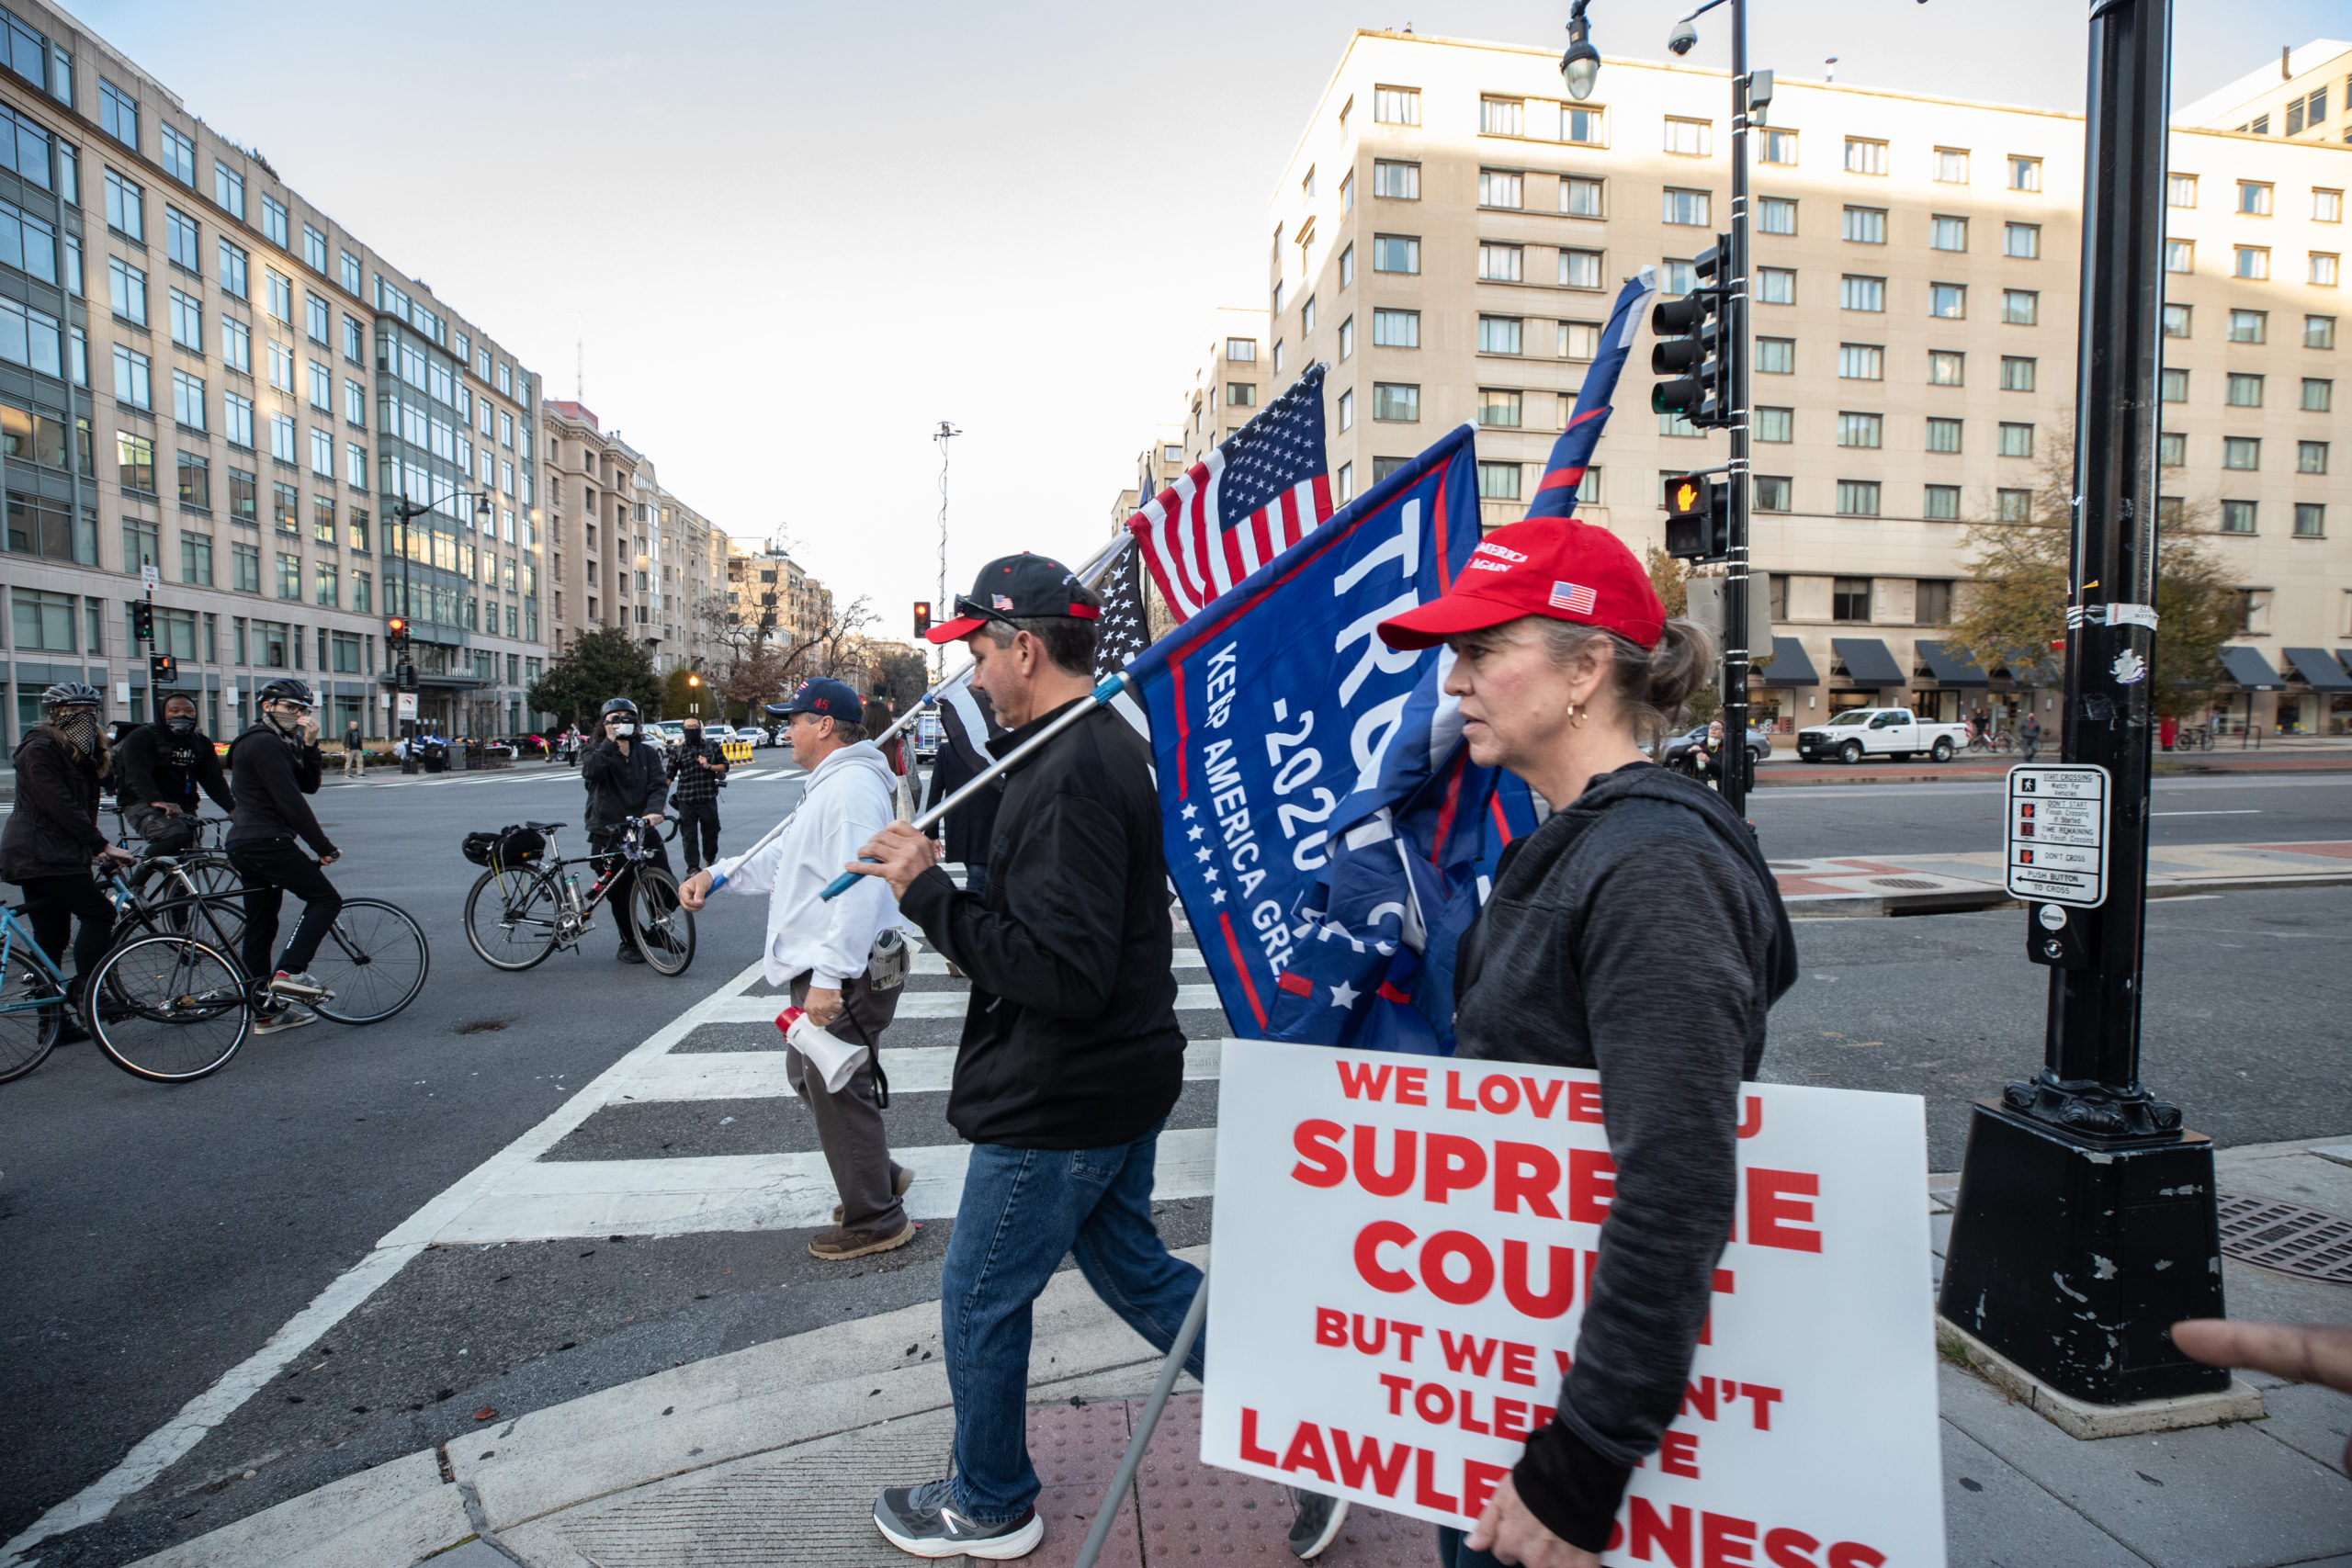 Supporters of President Donald Trump walked through Black Lives Matter Plaza after a pro-Trump demonstration in Washington, D.C. on Dec. 12, 2020. (Photo: Kaylee Greenlee - Daily Caller News Foundation)